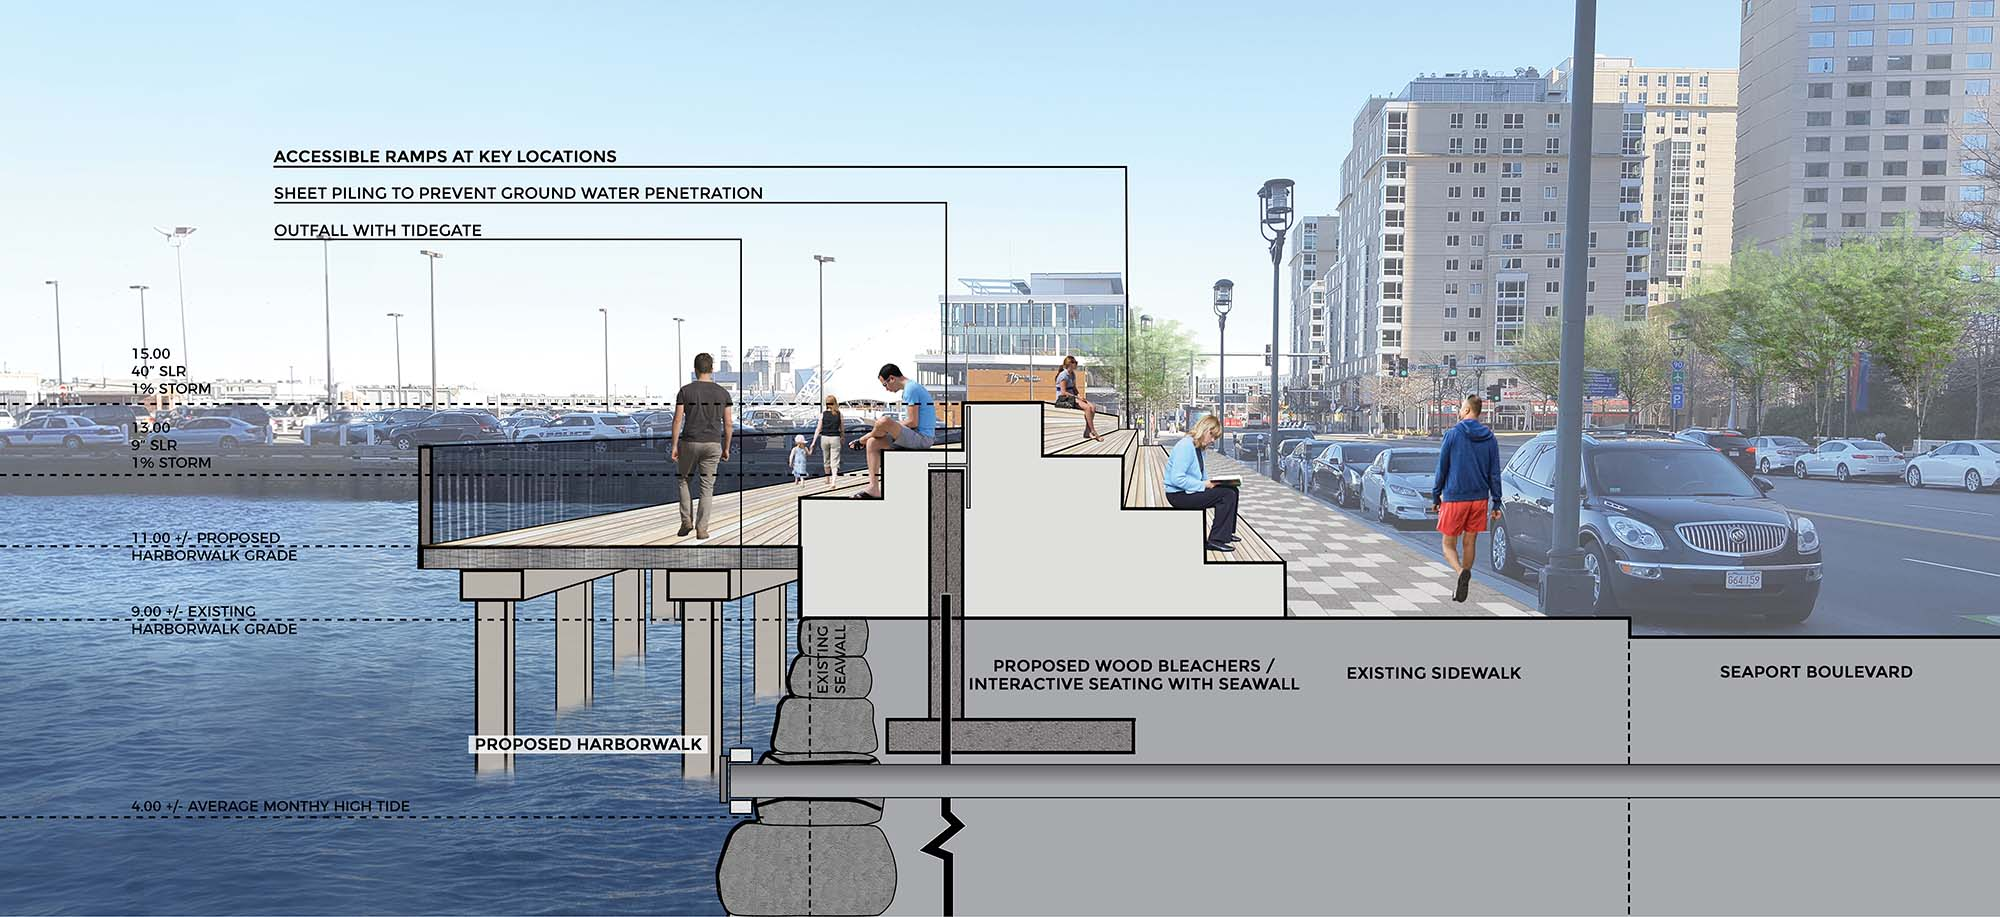 Image for proposed harborwalk with interactive seating